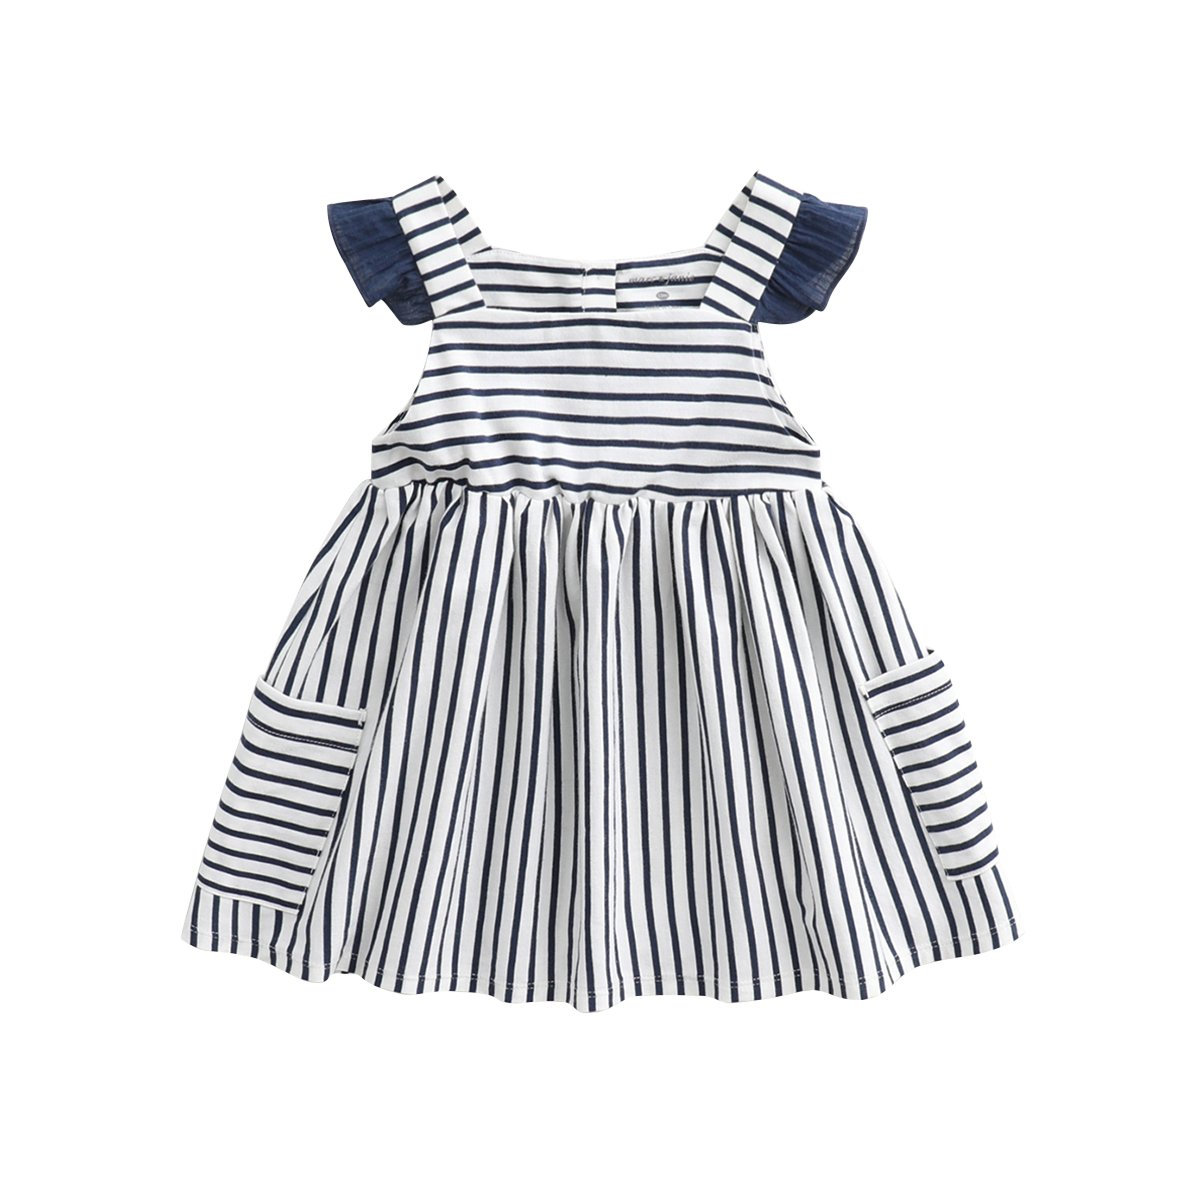 55789797d713 Amazon.com  marc janie Girls Cotton Striped Dress with Cap Sleeves  Clothing